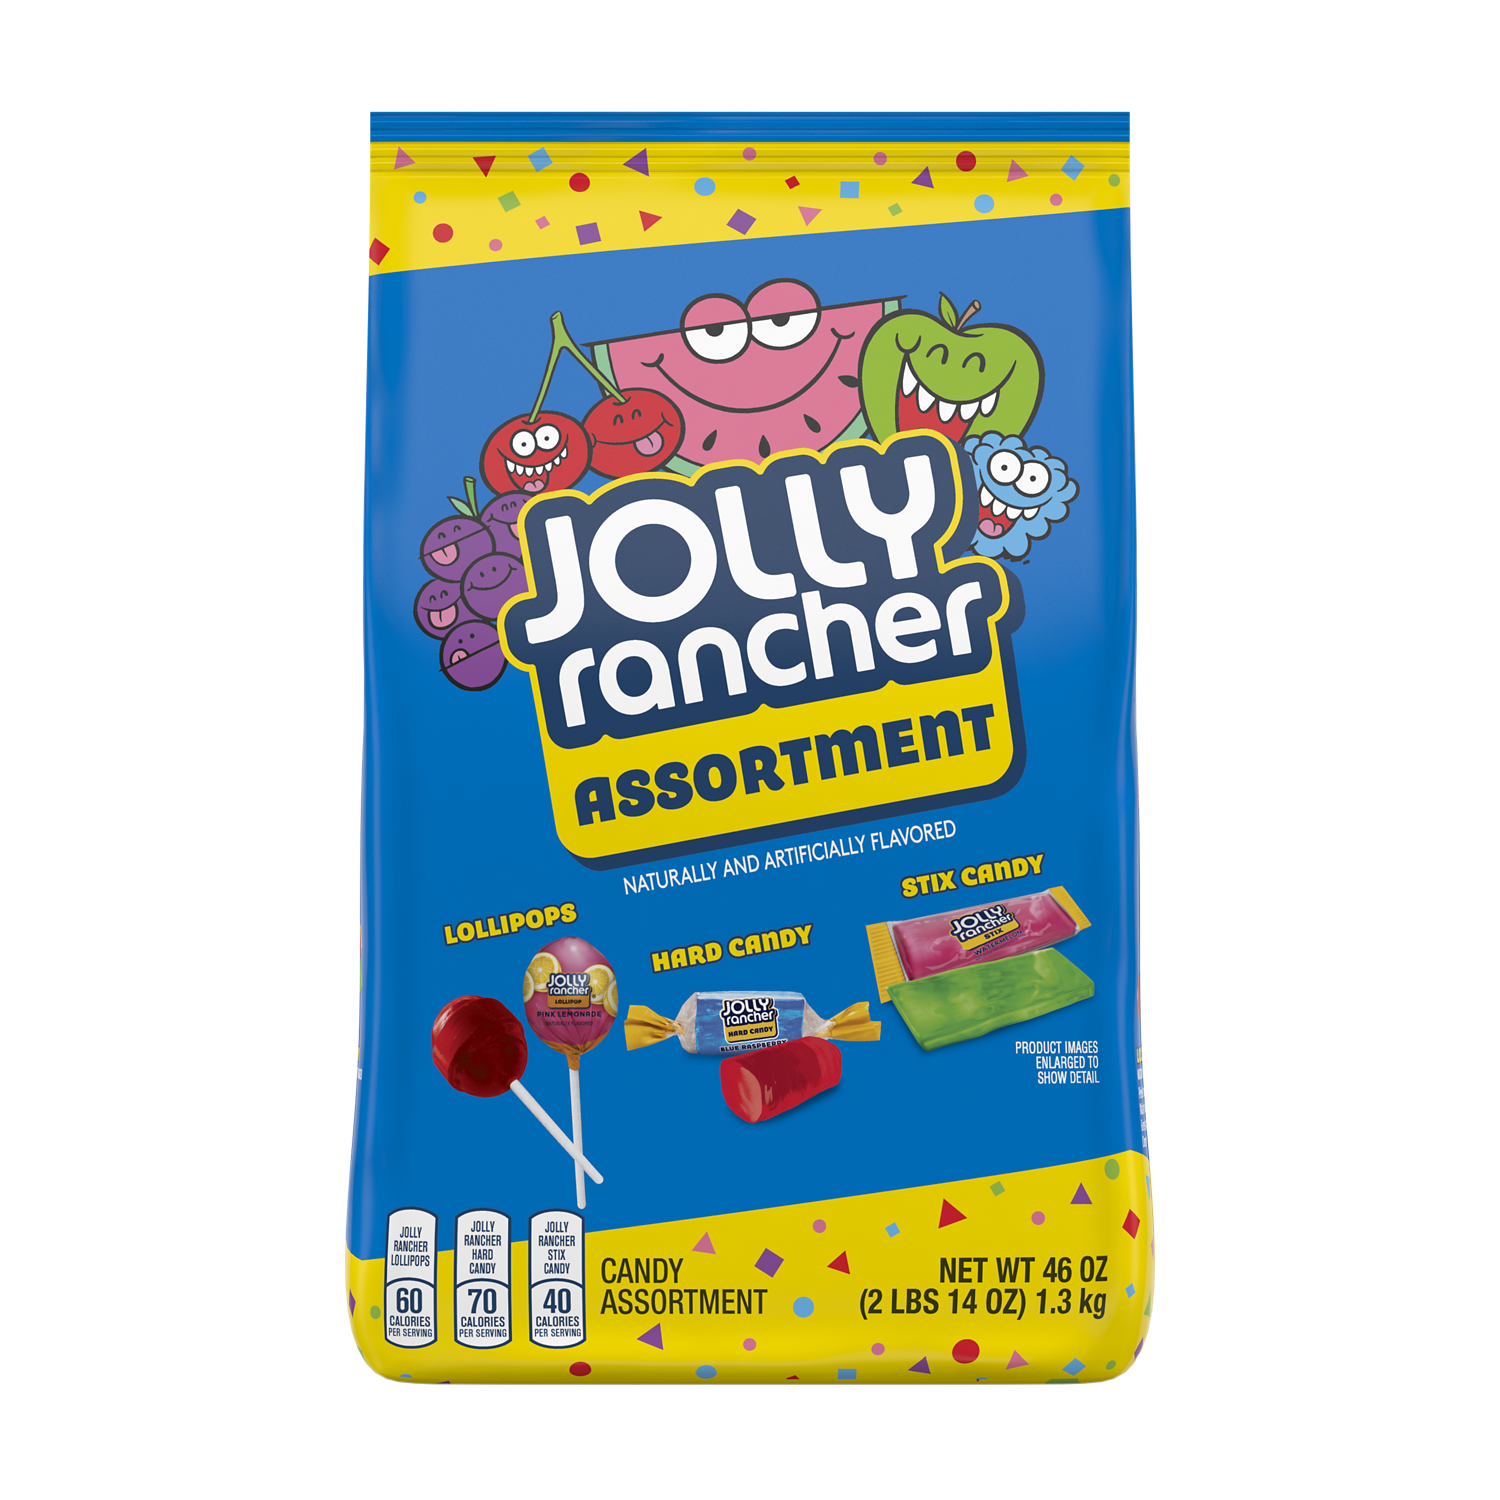 JOLLY RANCHER Candy Assortment, 46 oz bag - Front of Package